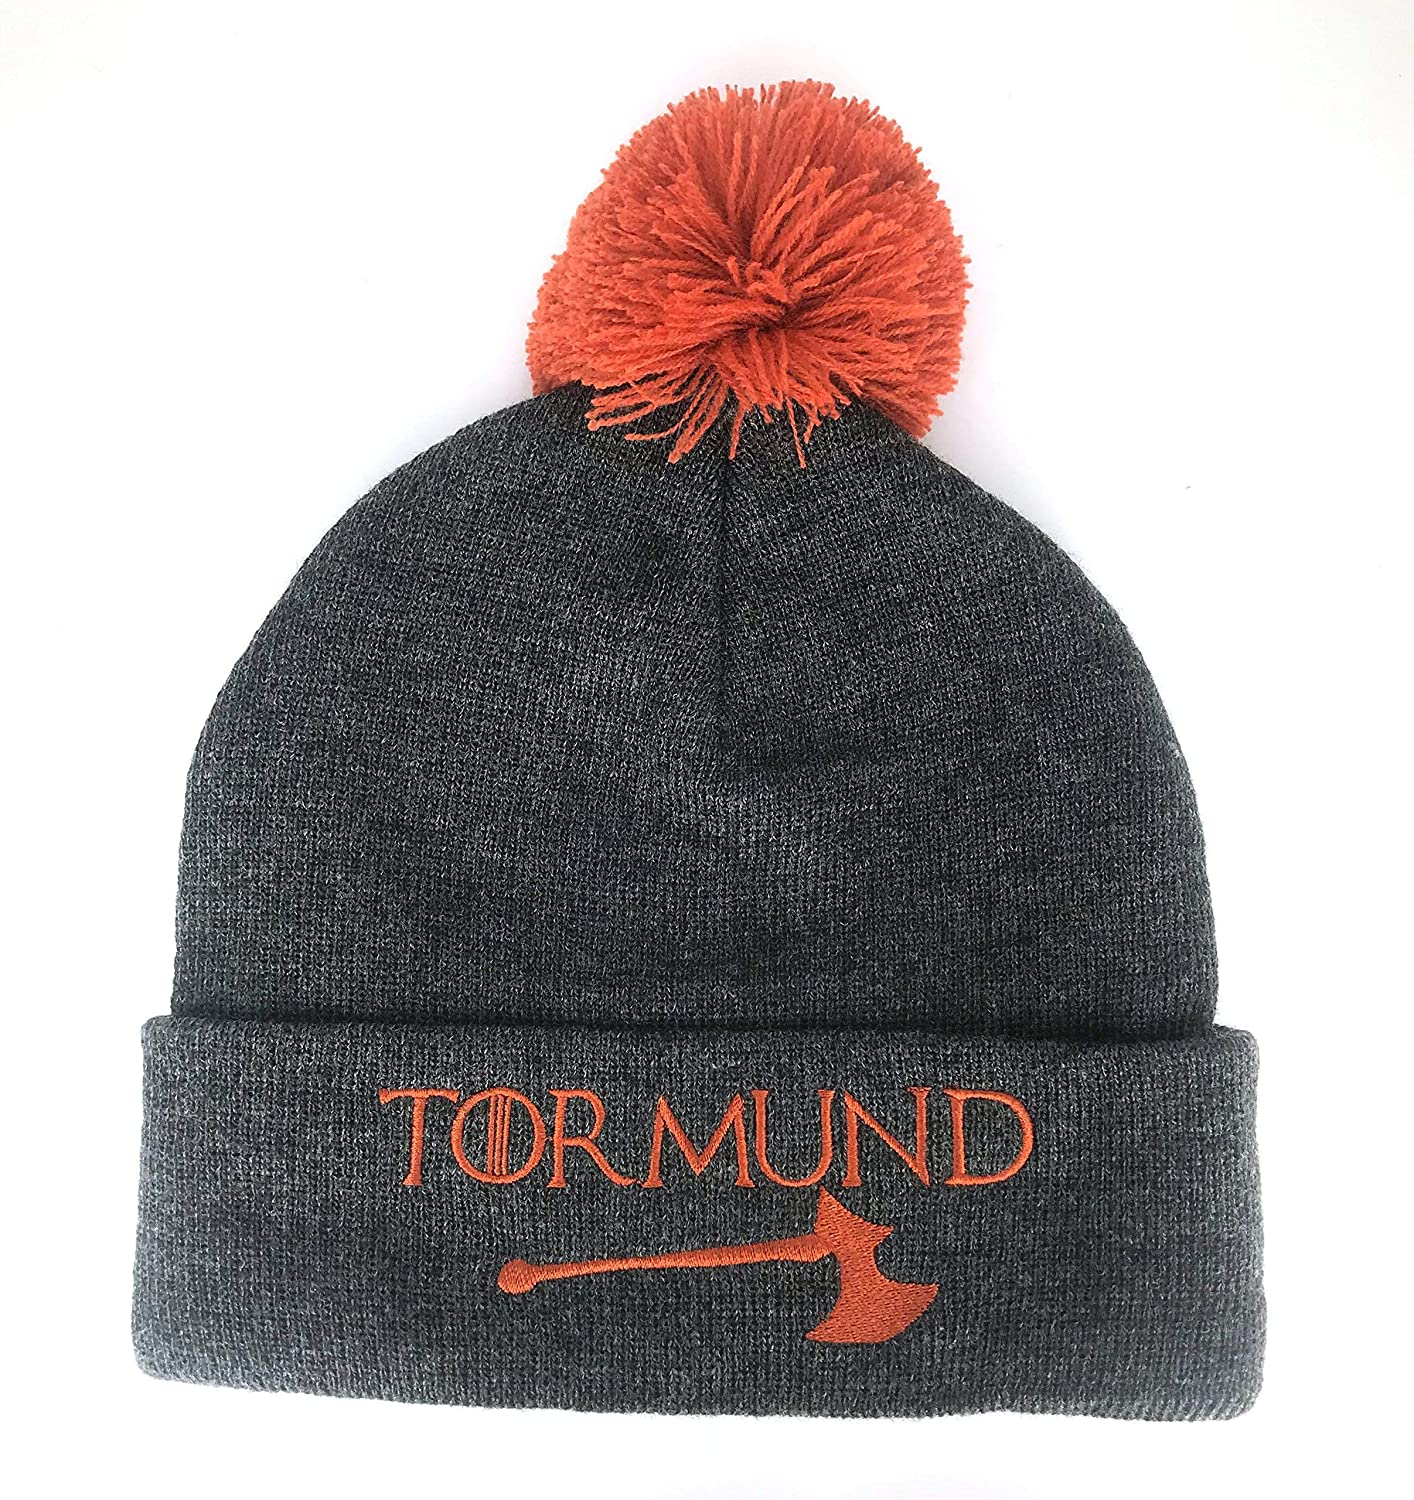 Game of Thrones: Winter is Here Unisex Pom Hats New York